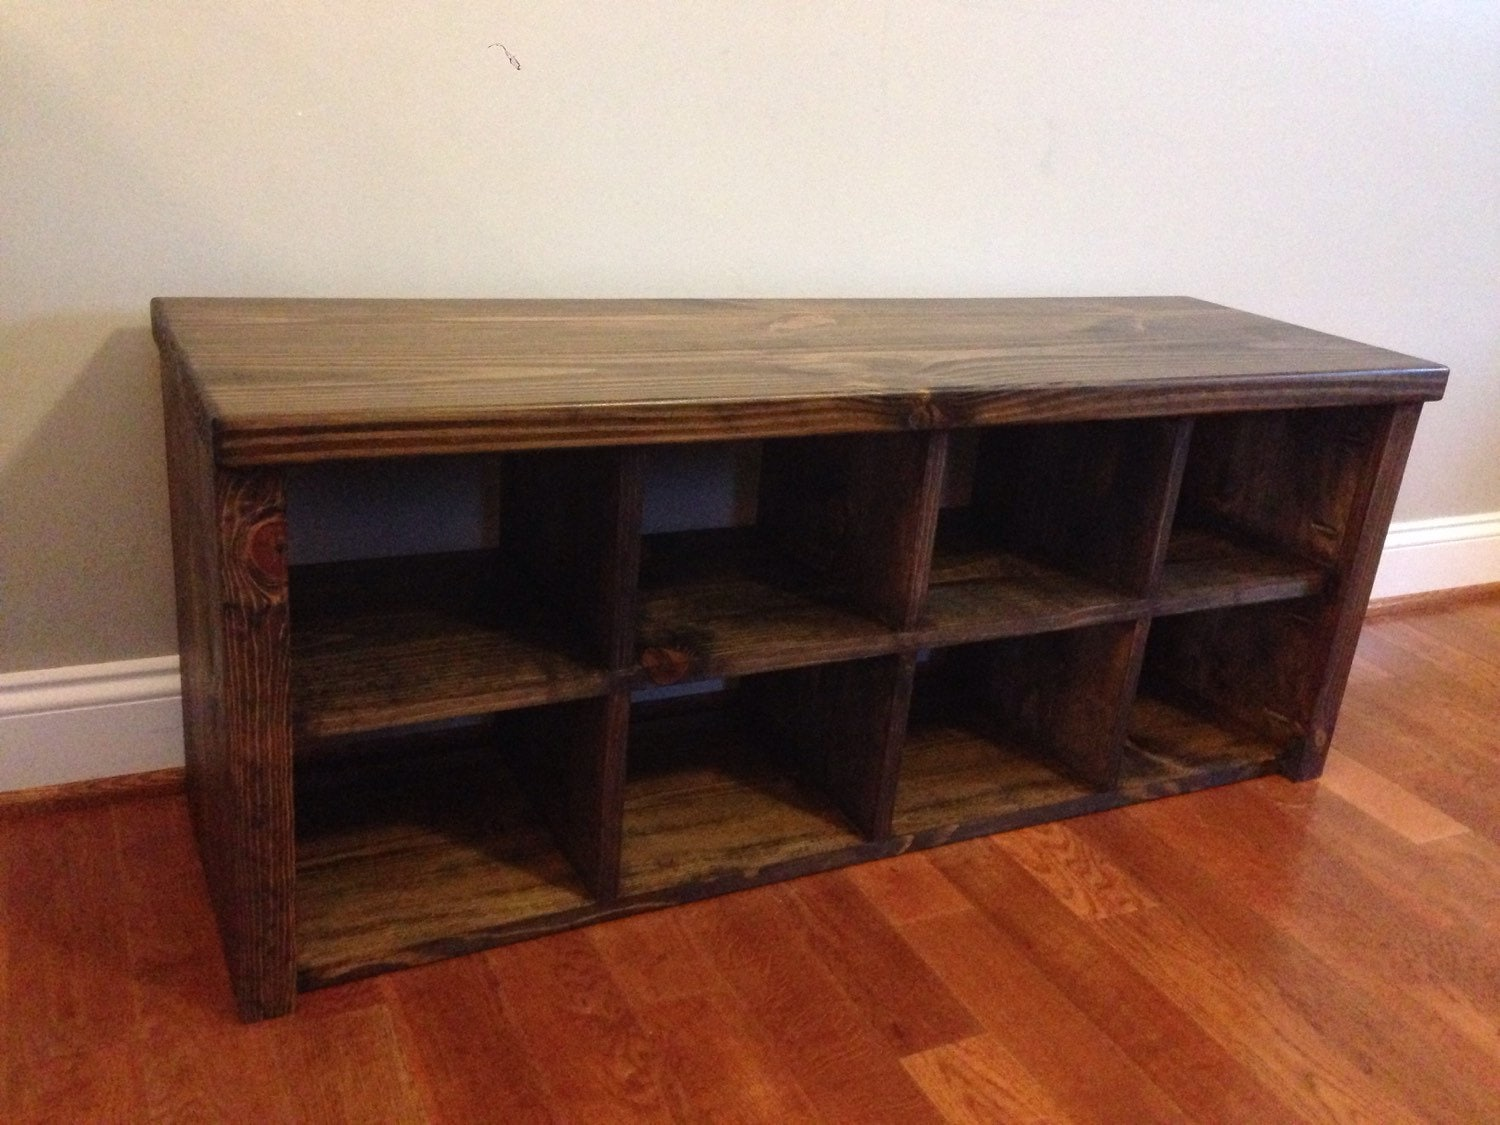 Rustic Shoe Bench With Cubbies By Jrscustomwoodwork On Etsy